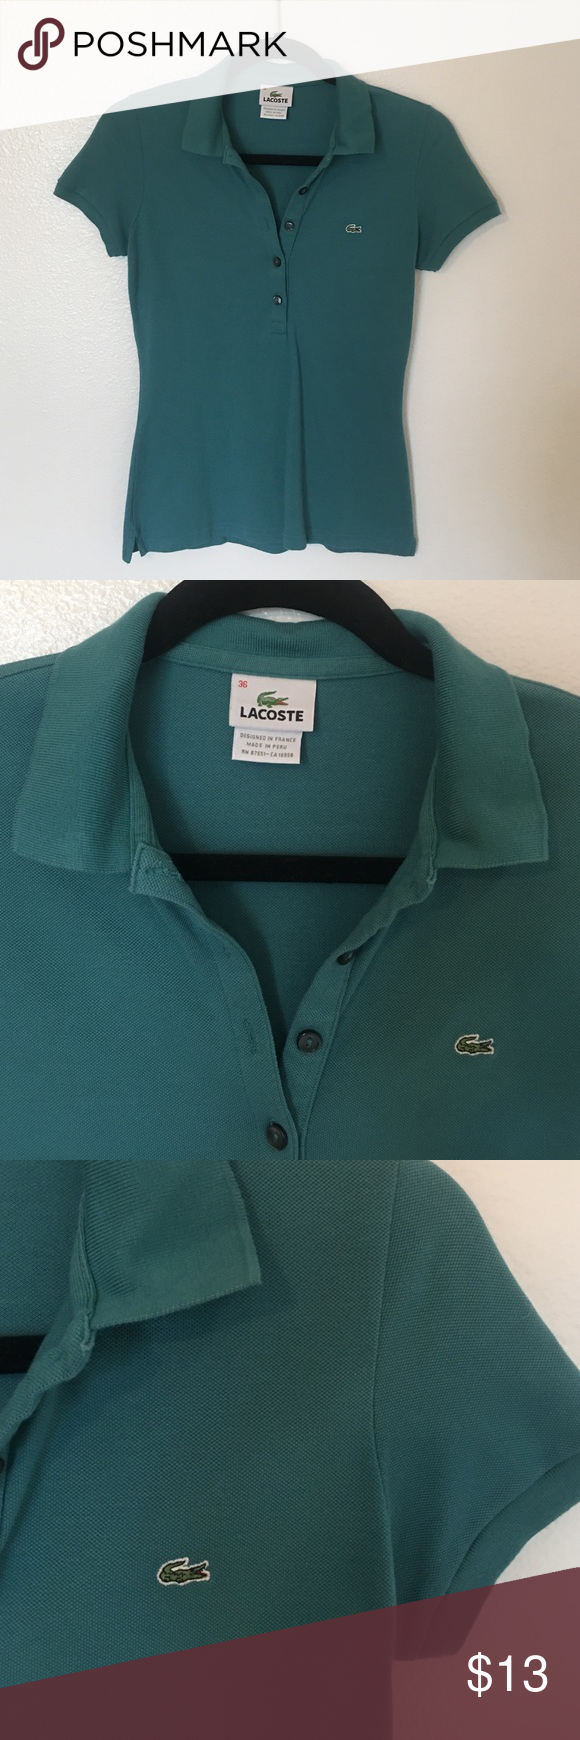 LACOSTE 🐊 Polo Shirt Basic polo five button shirt. No stains, no deodorant stains. Comfortable wear. Fits like an XS. Lacoste Tops Tees - Short Sleeve